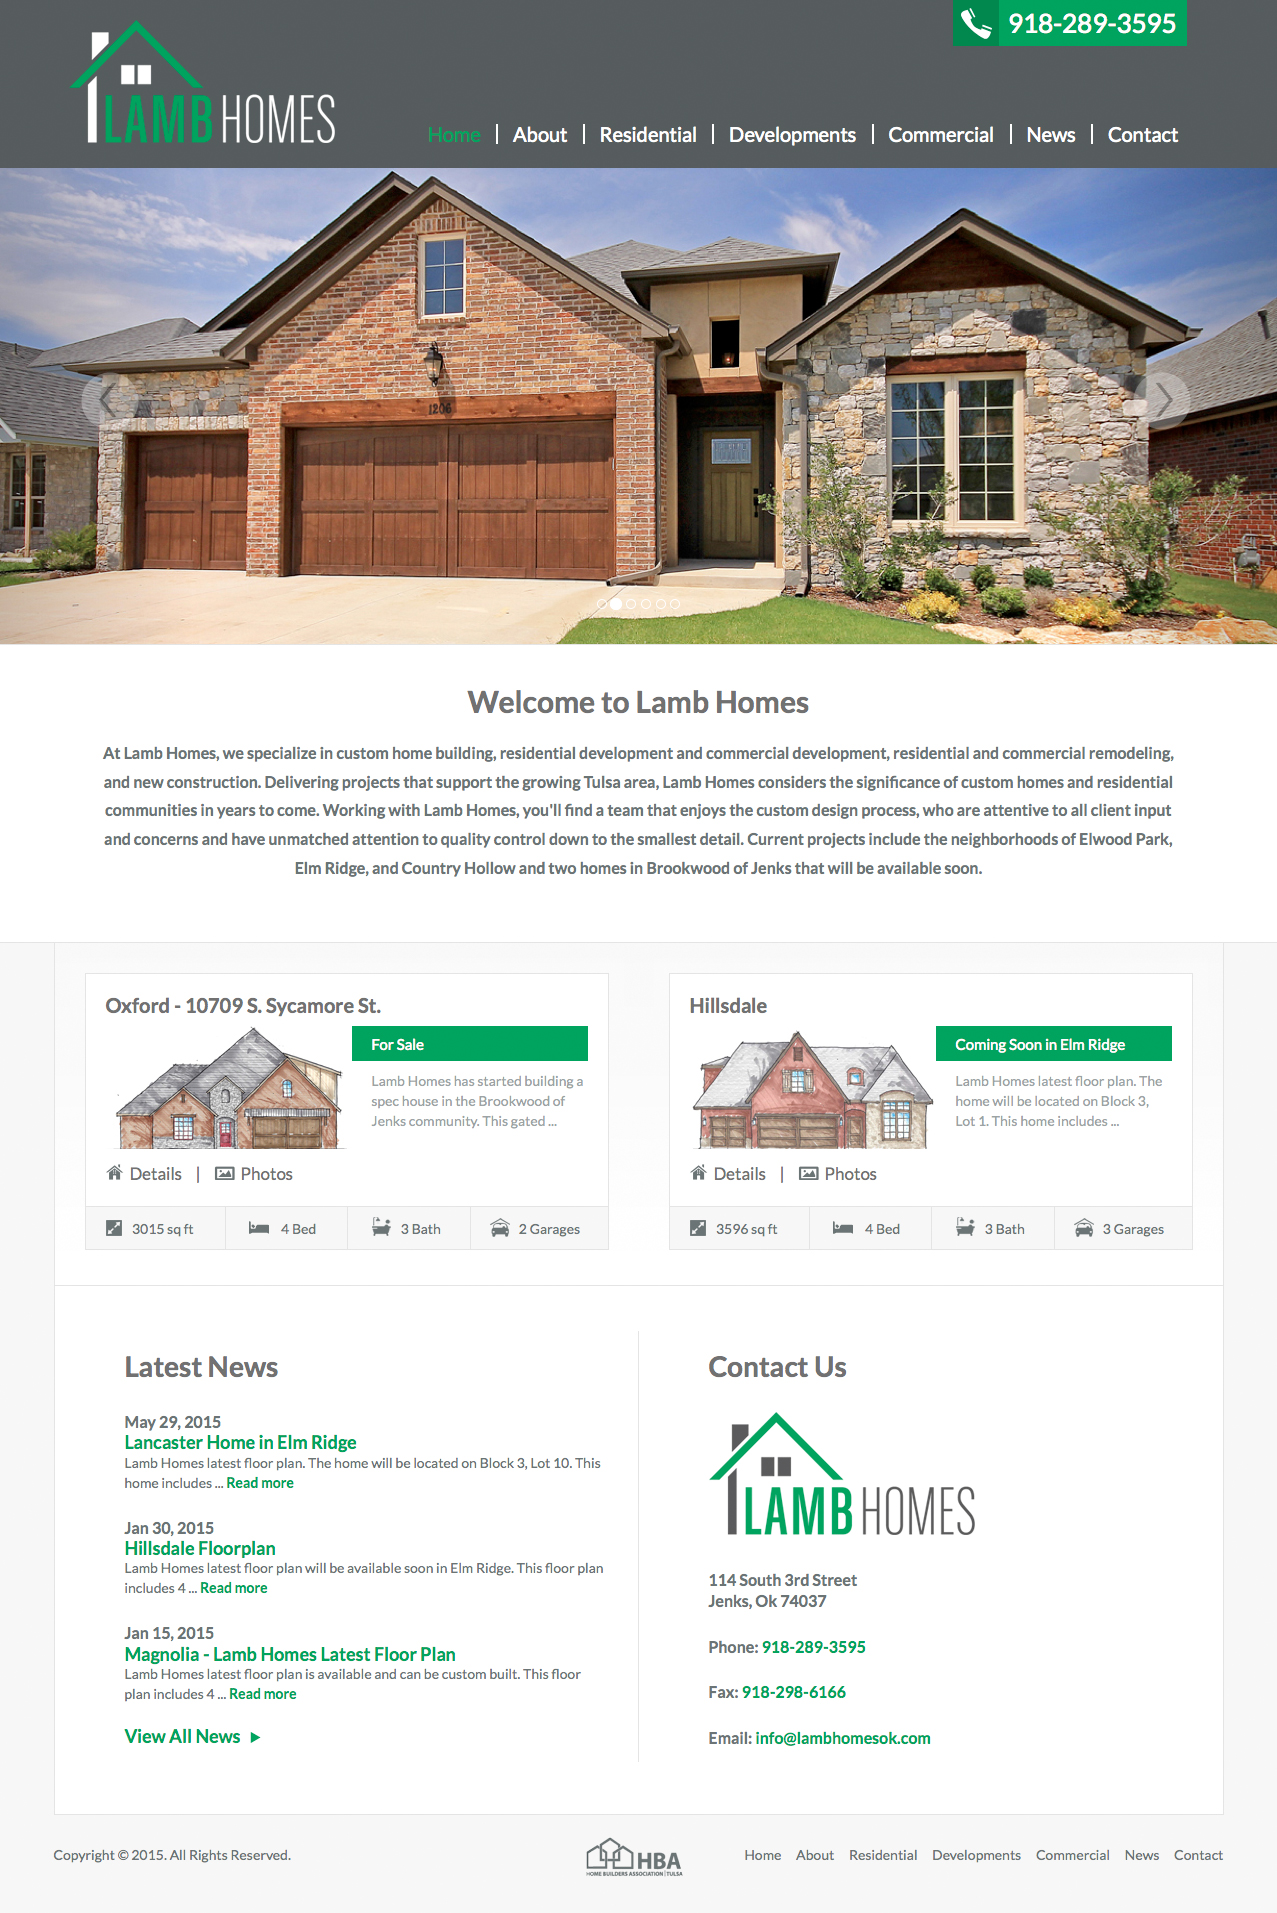 Homepage Screenshot of Lamb Homes